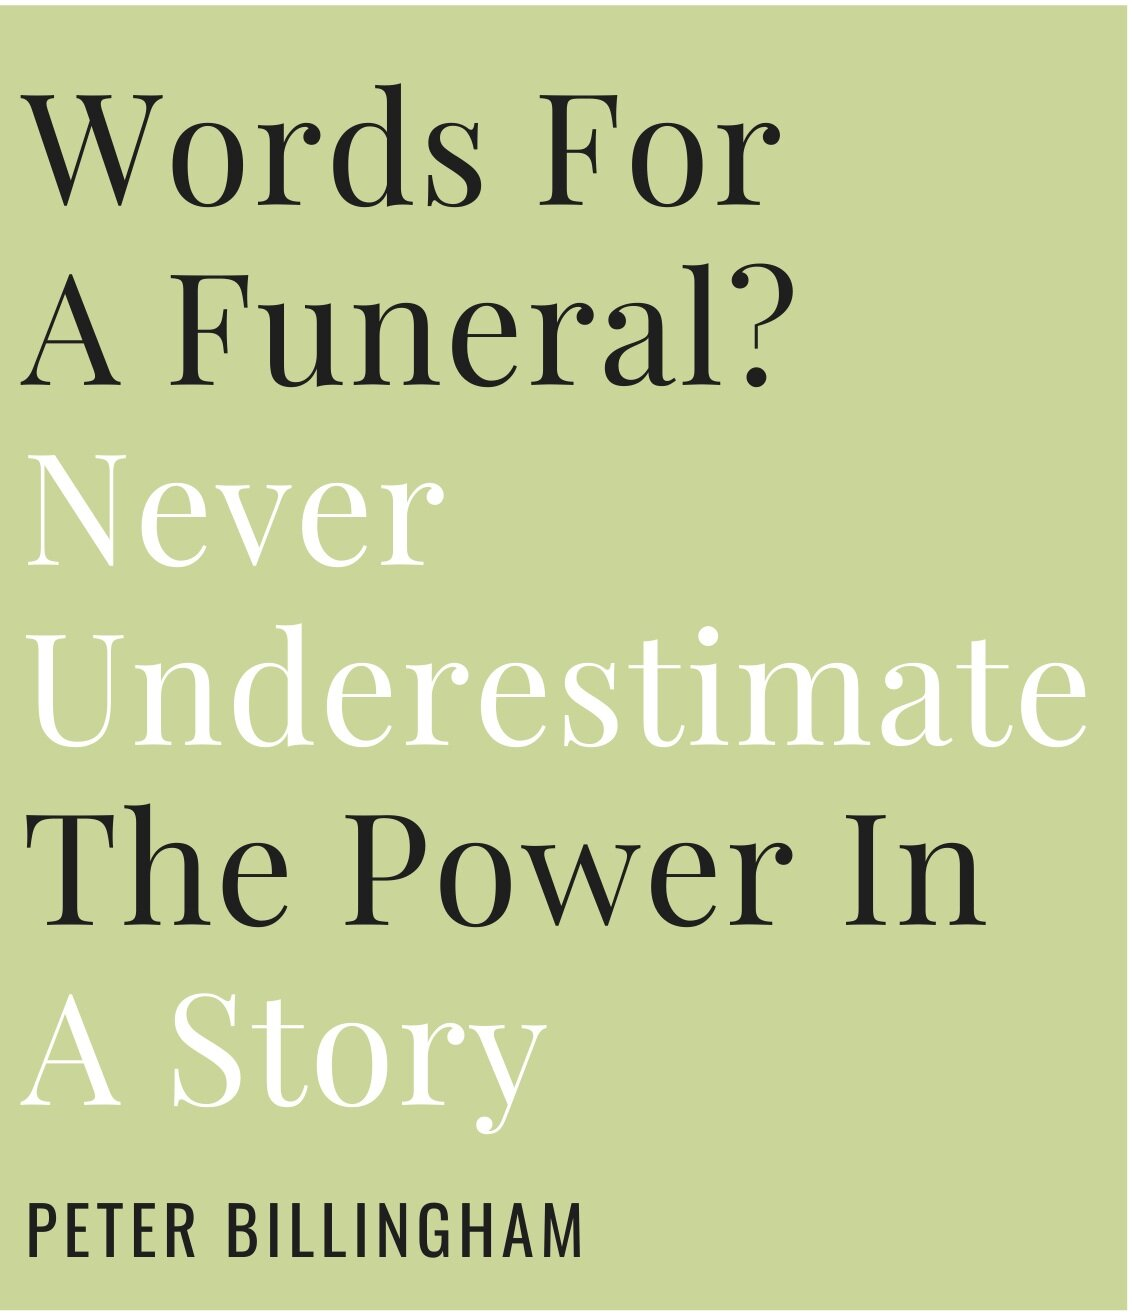 Peter Billingham Funeral Celebrant writes on how stories are critical when writing words for a funeral.